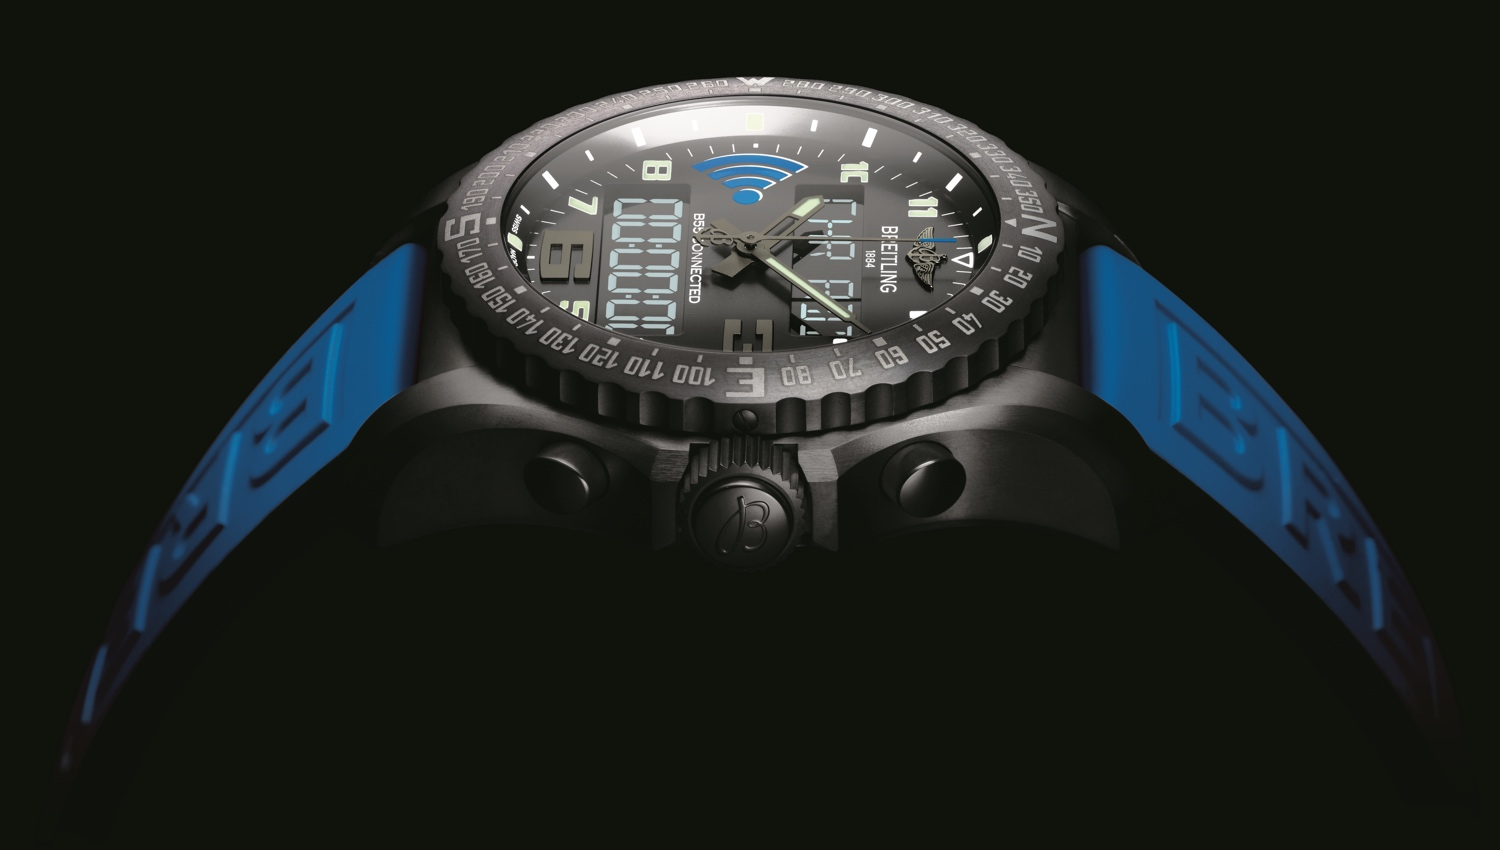 ​Breitling smartwatch out by Xmas